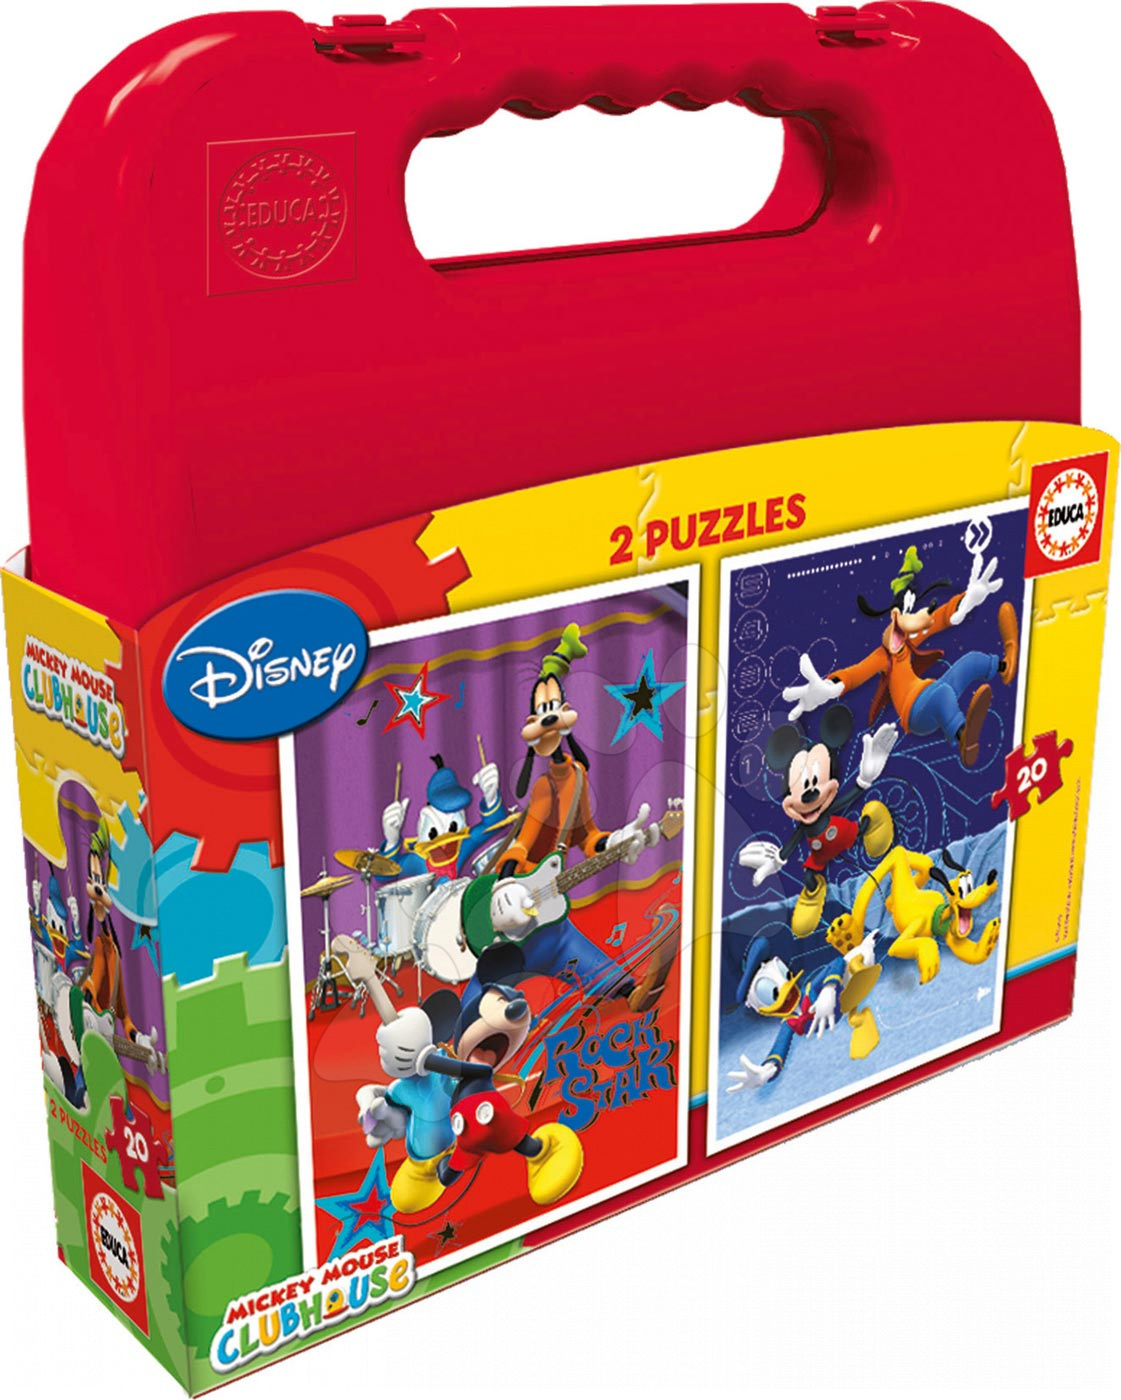 Puzzle Mickey Mouse Club House Educa kofferben 2x20 db